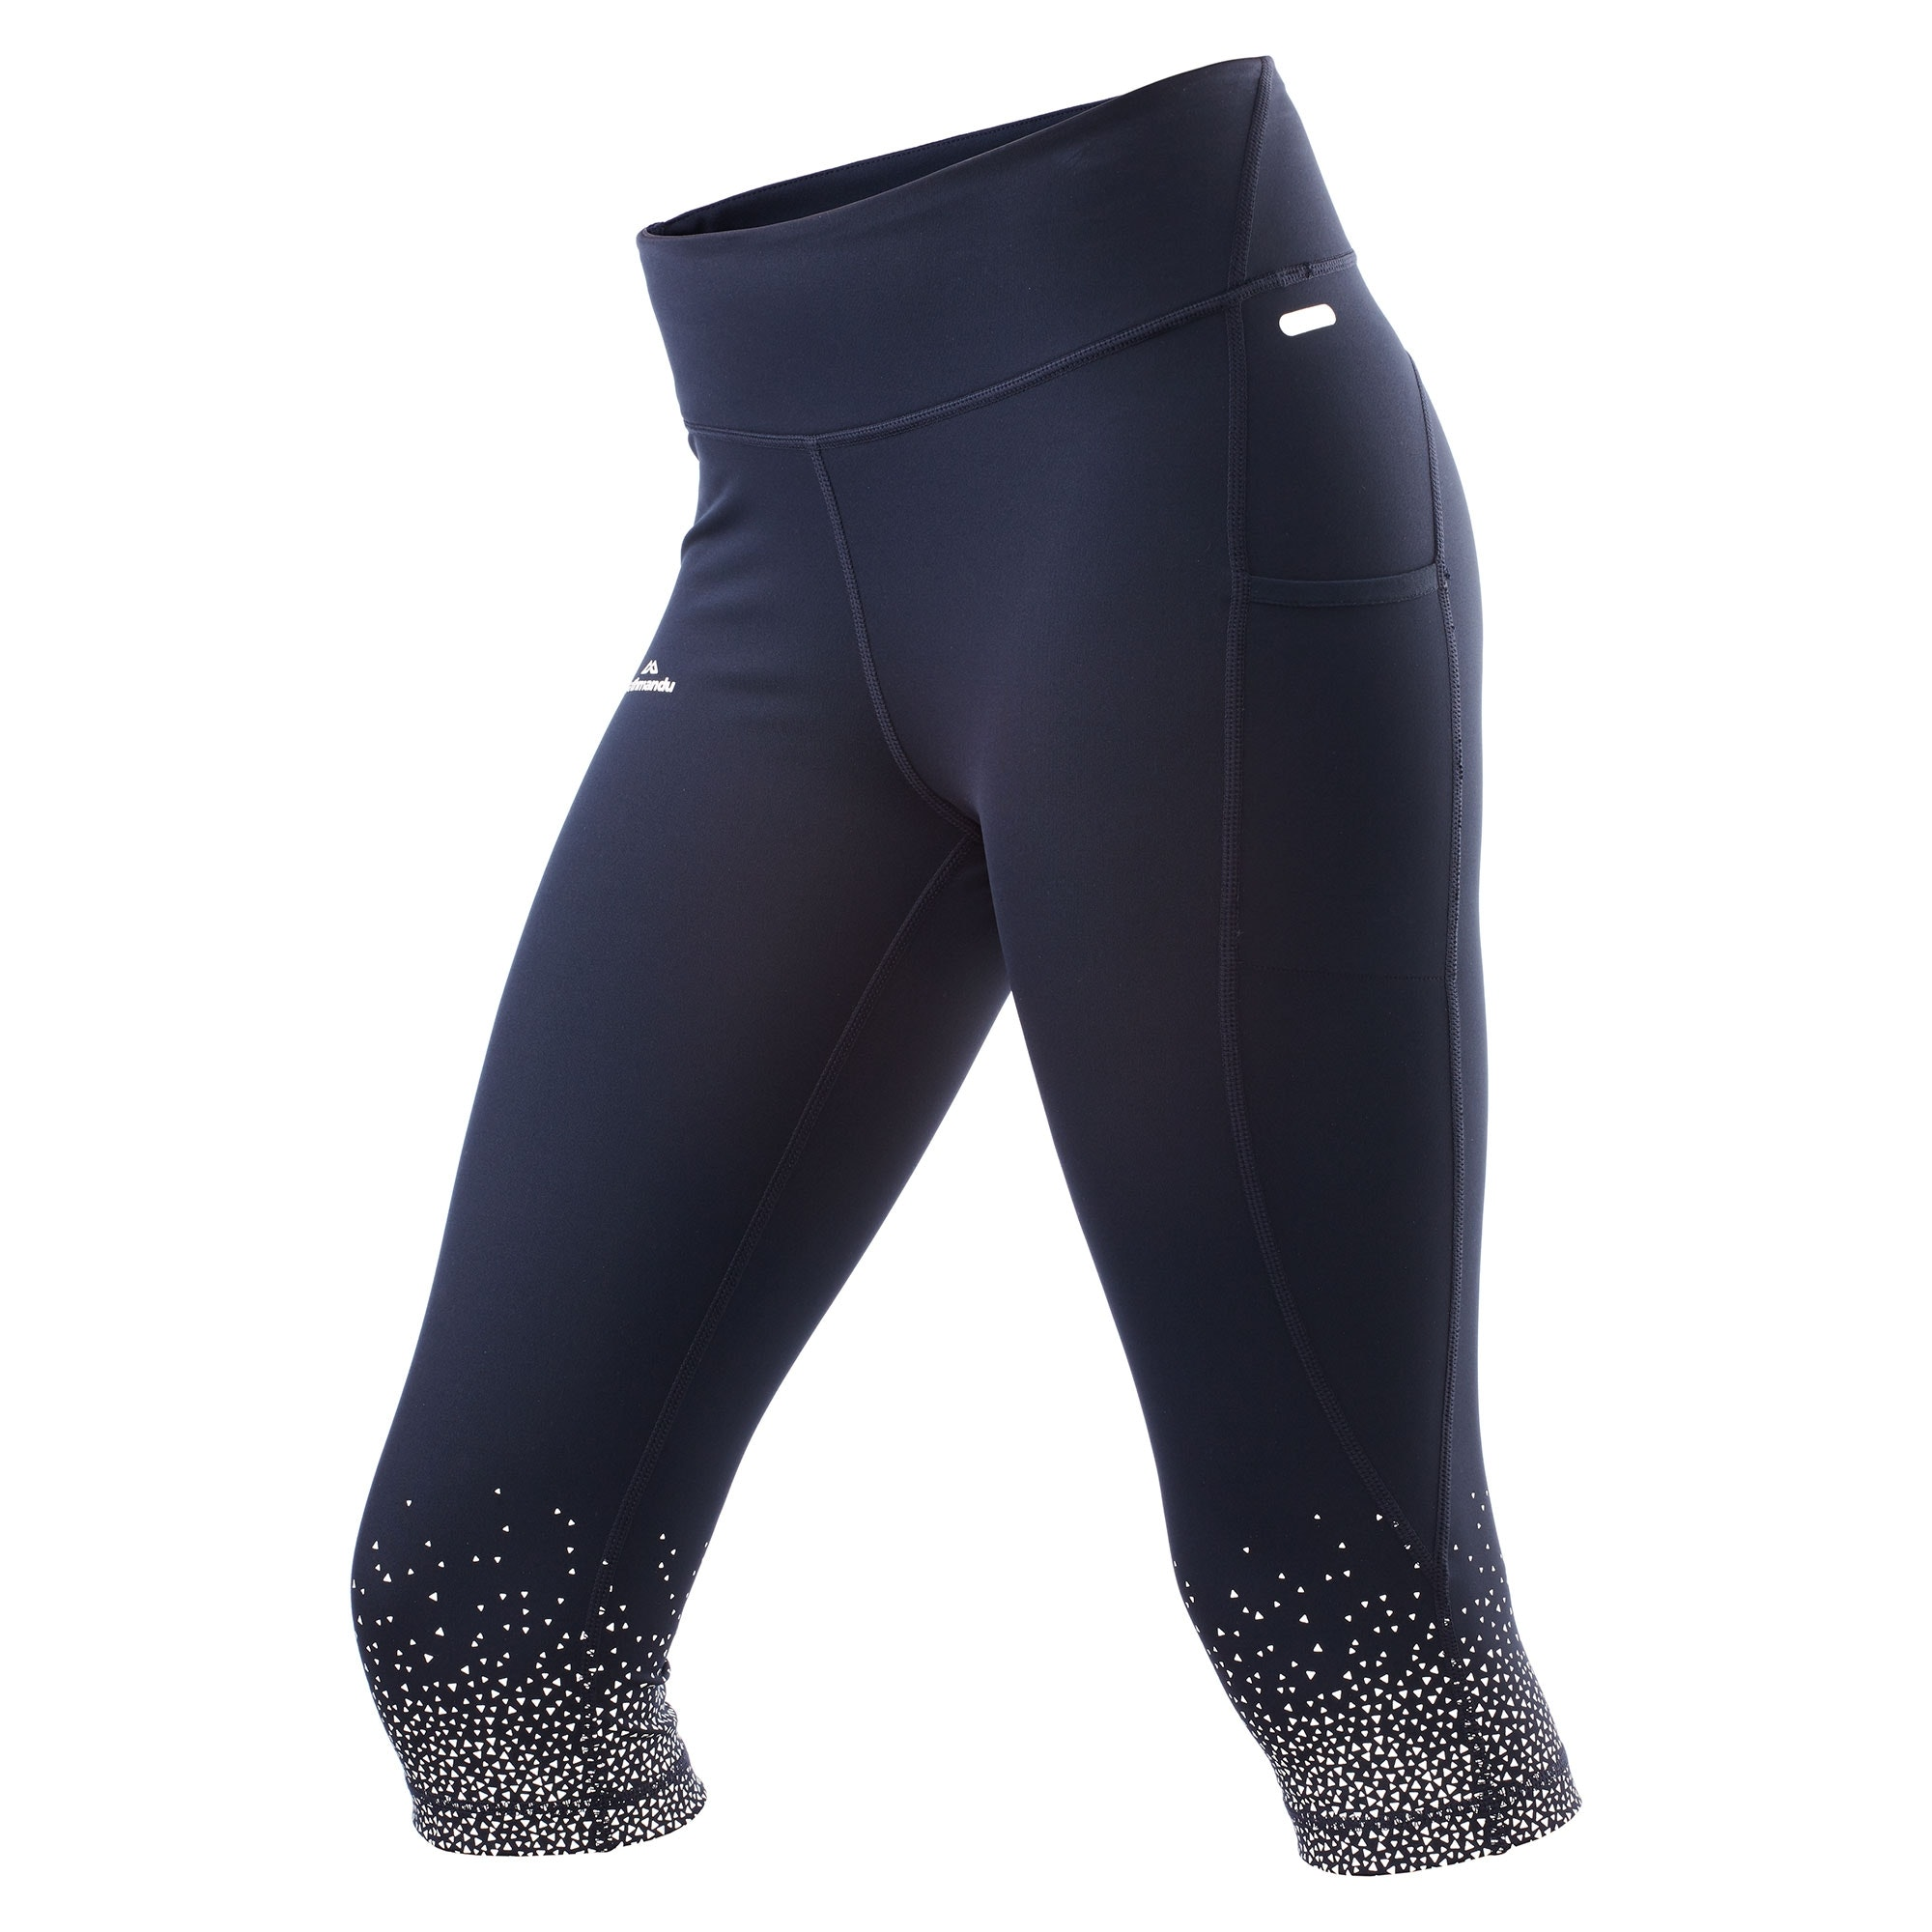 NEW-Kathmandu-Zeolite-Women-039-s-Active-Performance-3-4-Leggings thumbnail 19